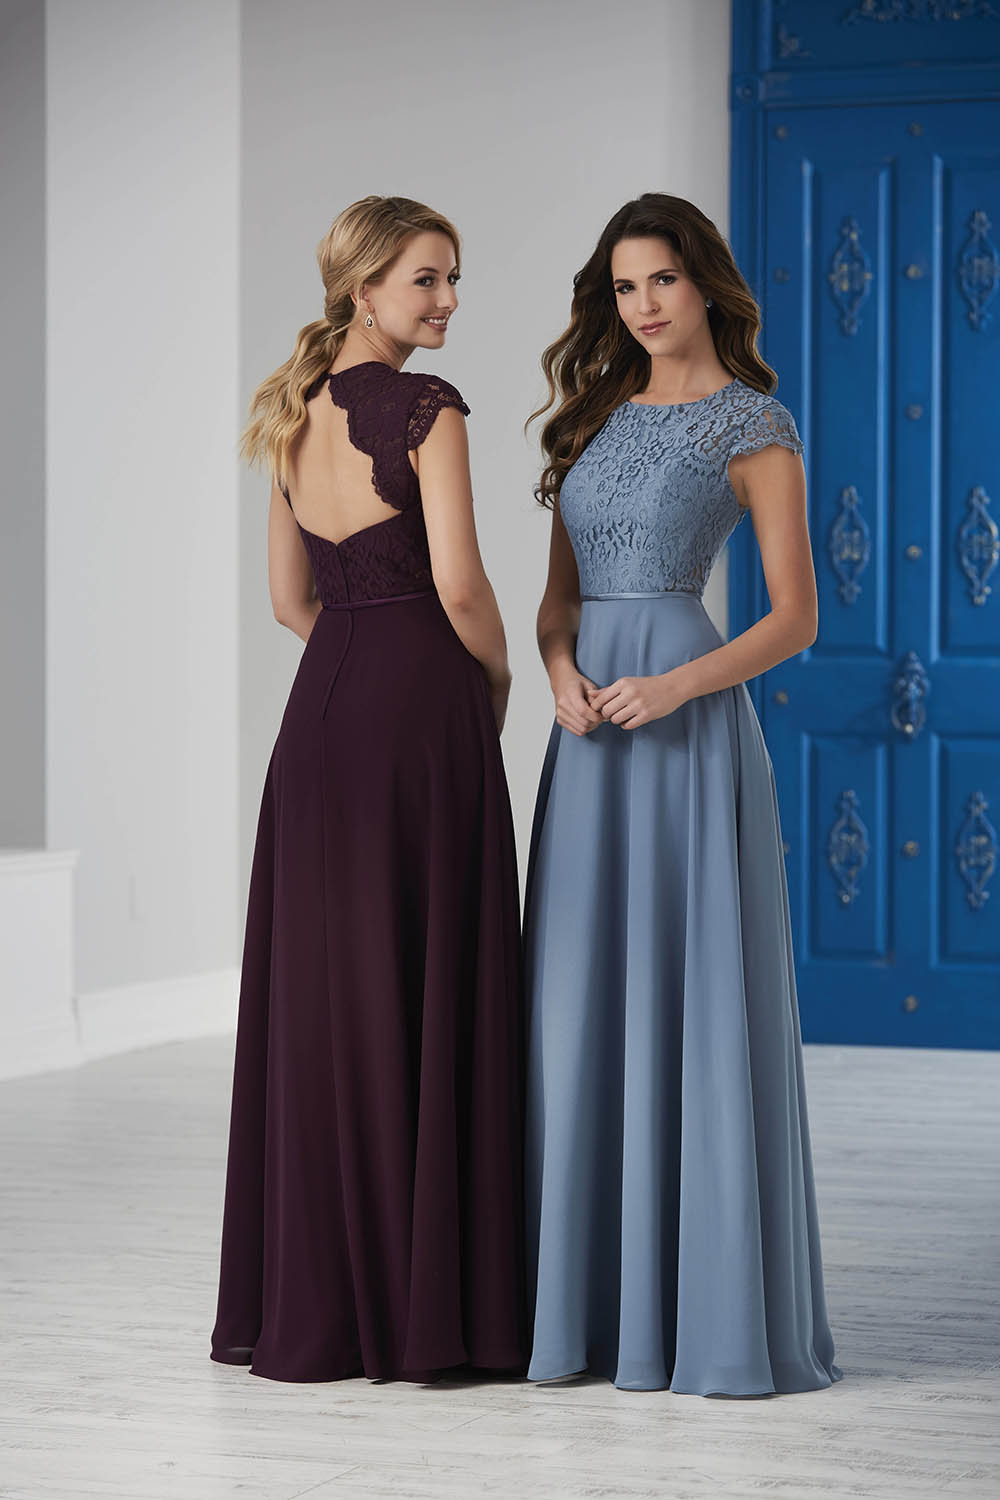 bridesmaid-dresses-jacquelin-bridals-canada-26198